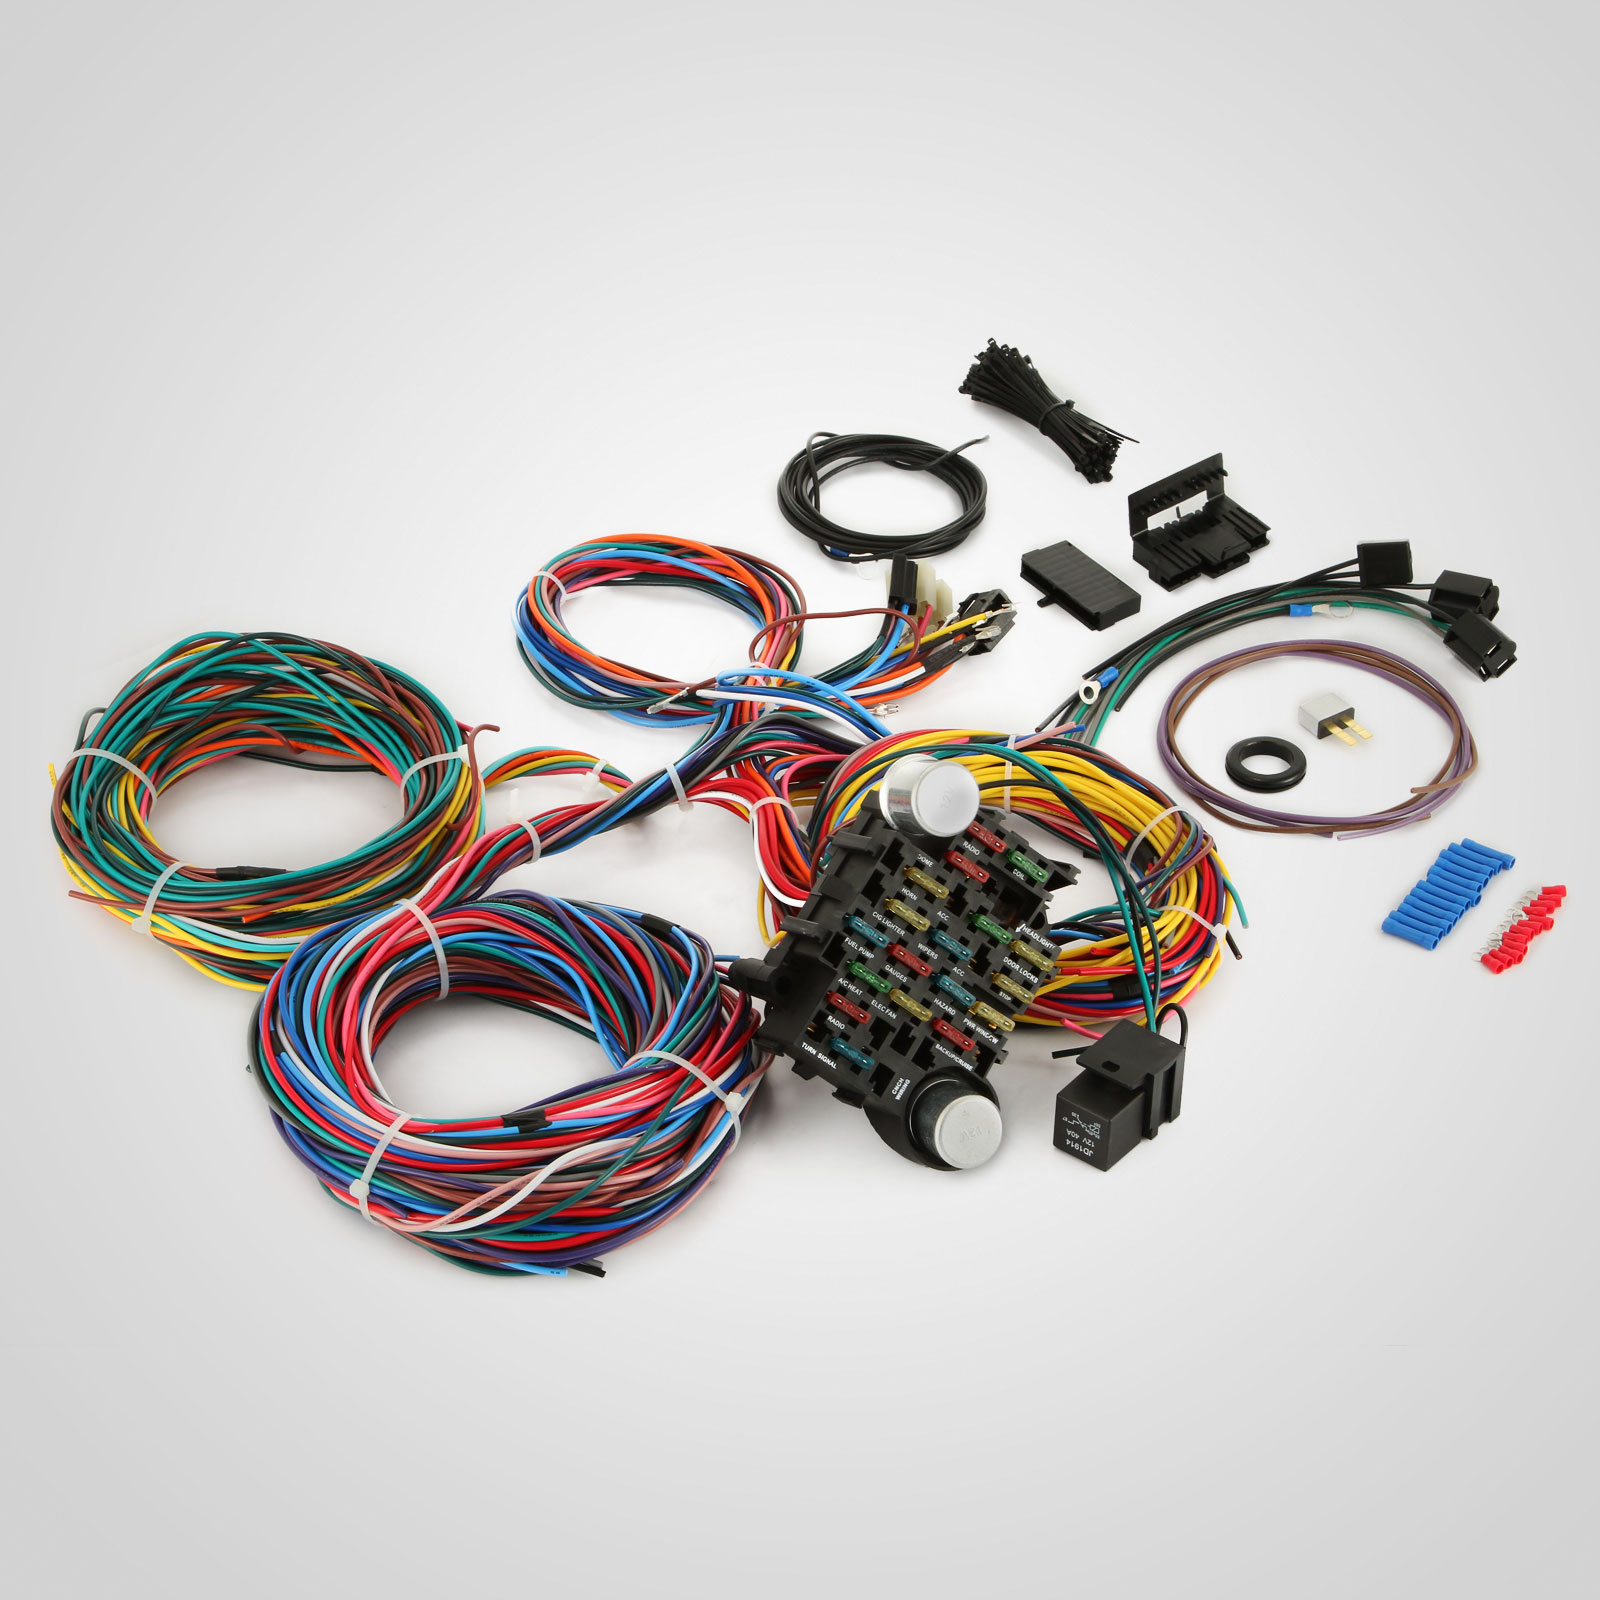 d513 3 real 12 circuit street rod wiring harness standard panel car truck street rod wiring harness at creativeand.co